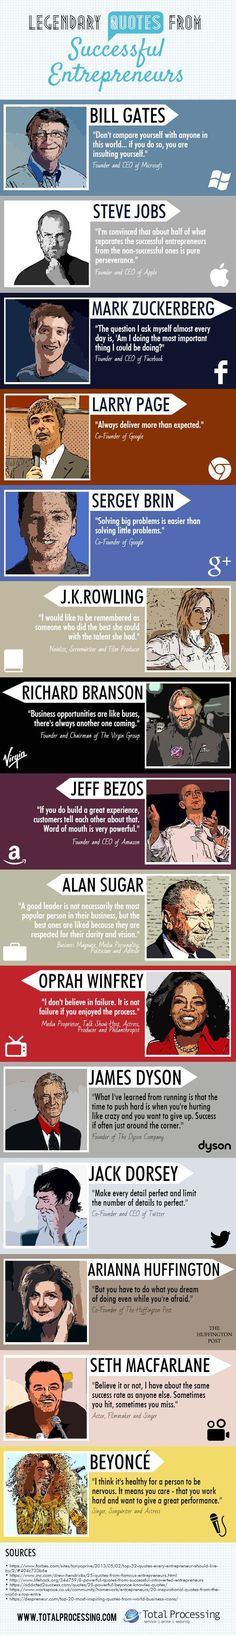 These inspirational quotes will get you motivated. See what successful entrepreneurs - from Bill Gates to Steve Jobs to Beyonce - say about overcoming challenges and performing at their best. - Tap the link now to Learn how I made it to 1 million in sales in 5 months with e-commerce! I'll give you the 3 advertising phases I did to make it for FREE!